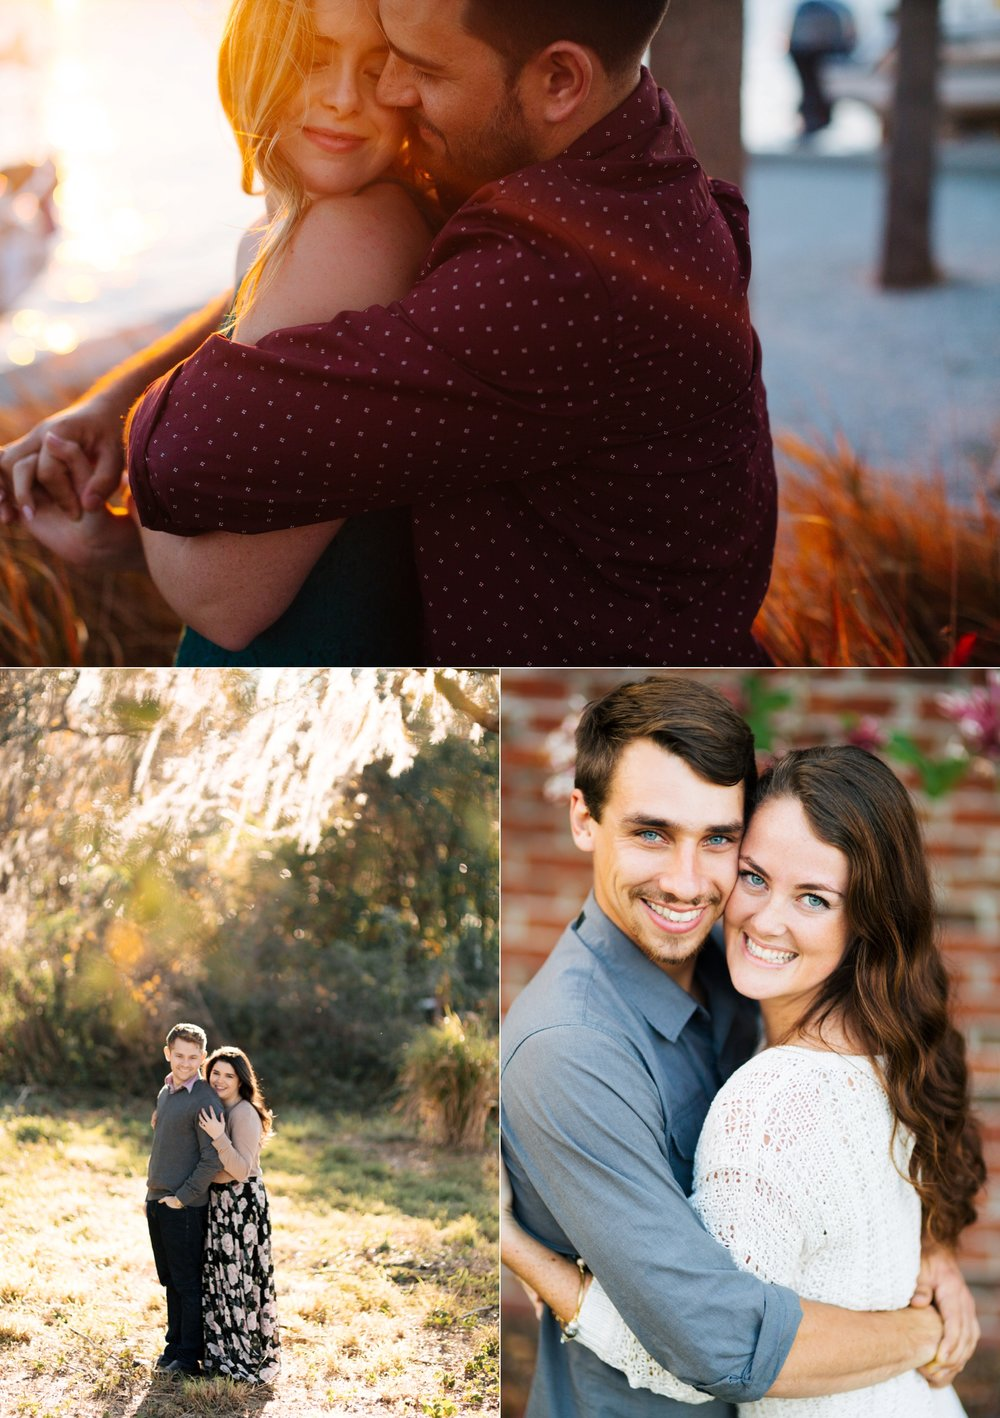 Jake & Katie Photography Best of Couples 2016-029.jpg